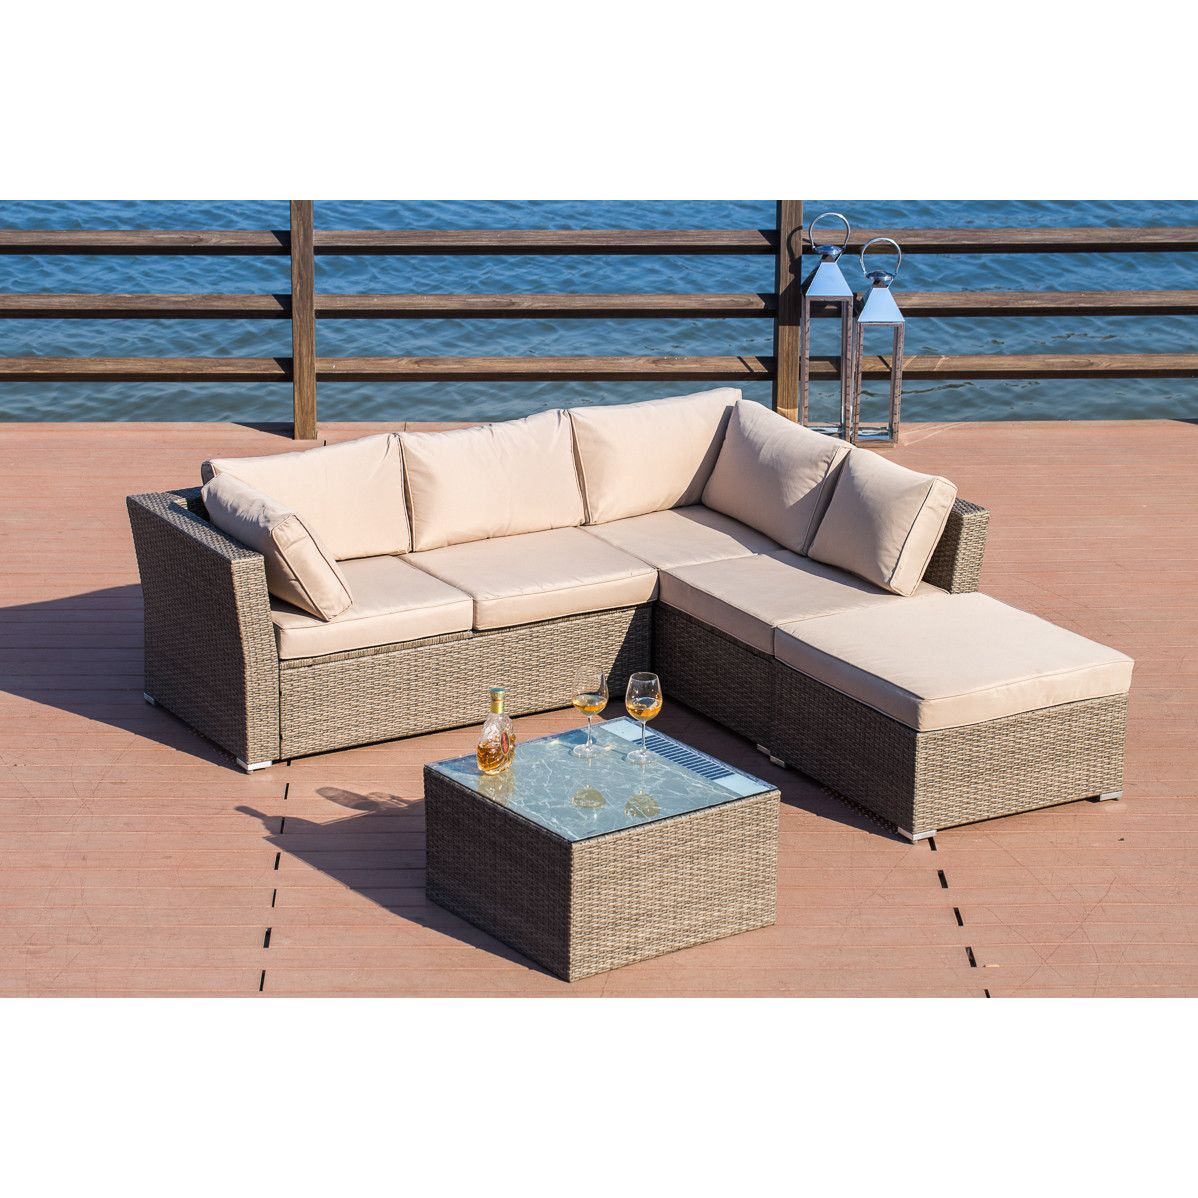 Mercury Row Amesbury Solar Light Up Luxury 4 Piece Sofa Seating Group With Cushion